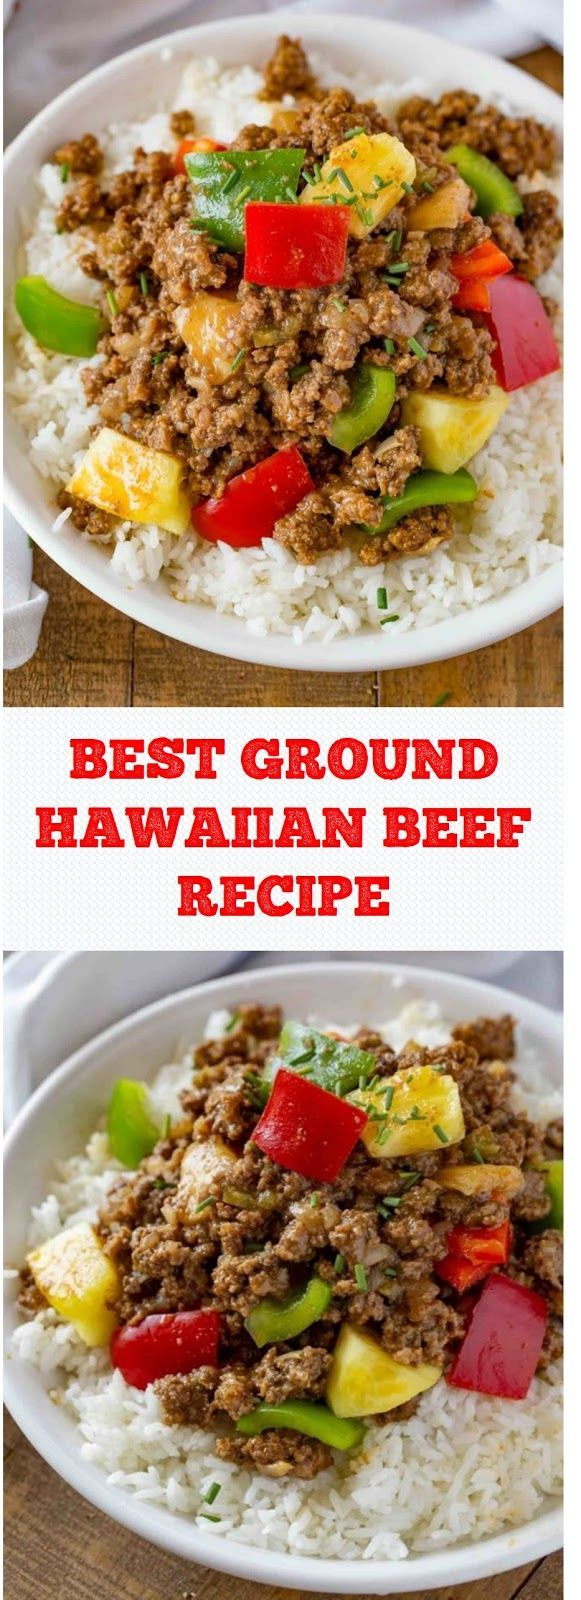 Best Ground Hawaiian Beef Recipe Beef Recipes Ground Beef Paleo Recipes Beef Casserole Recipes